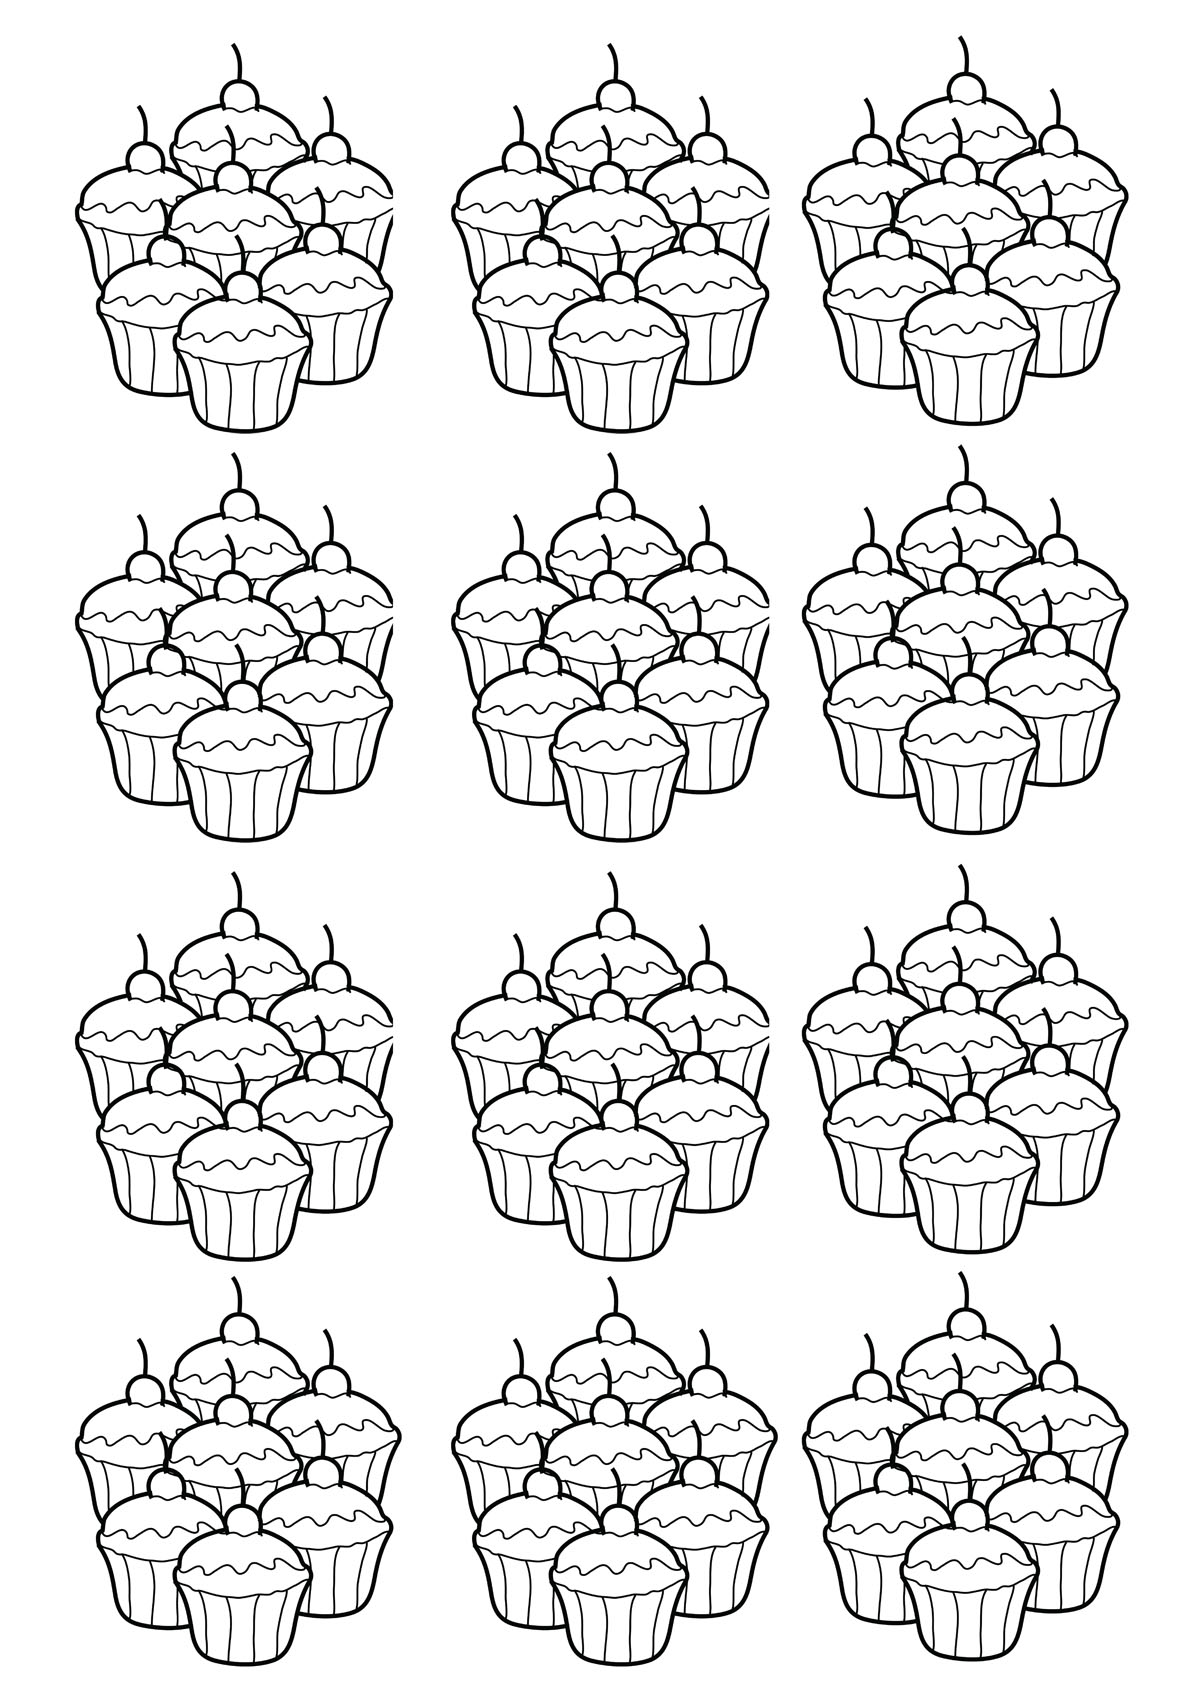 Basic mosaic of cupcakes to color